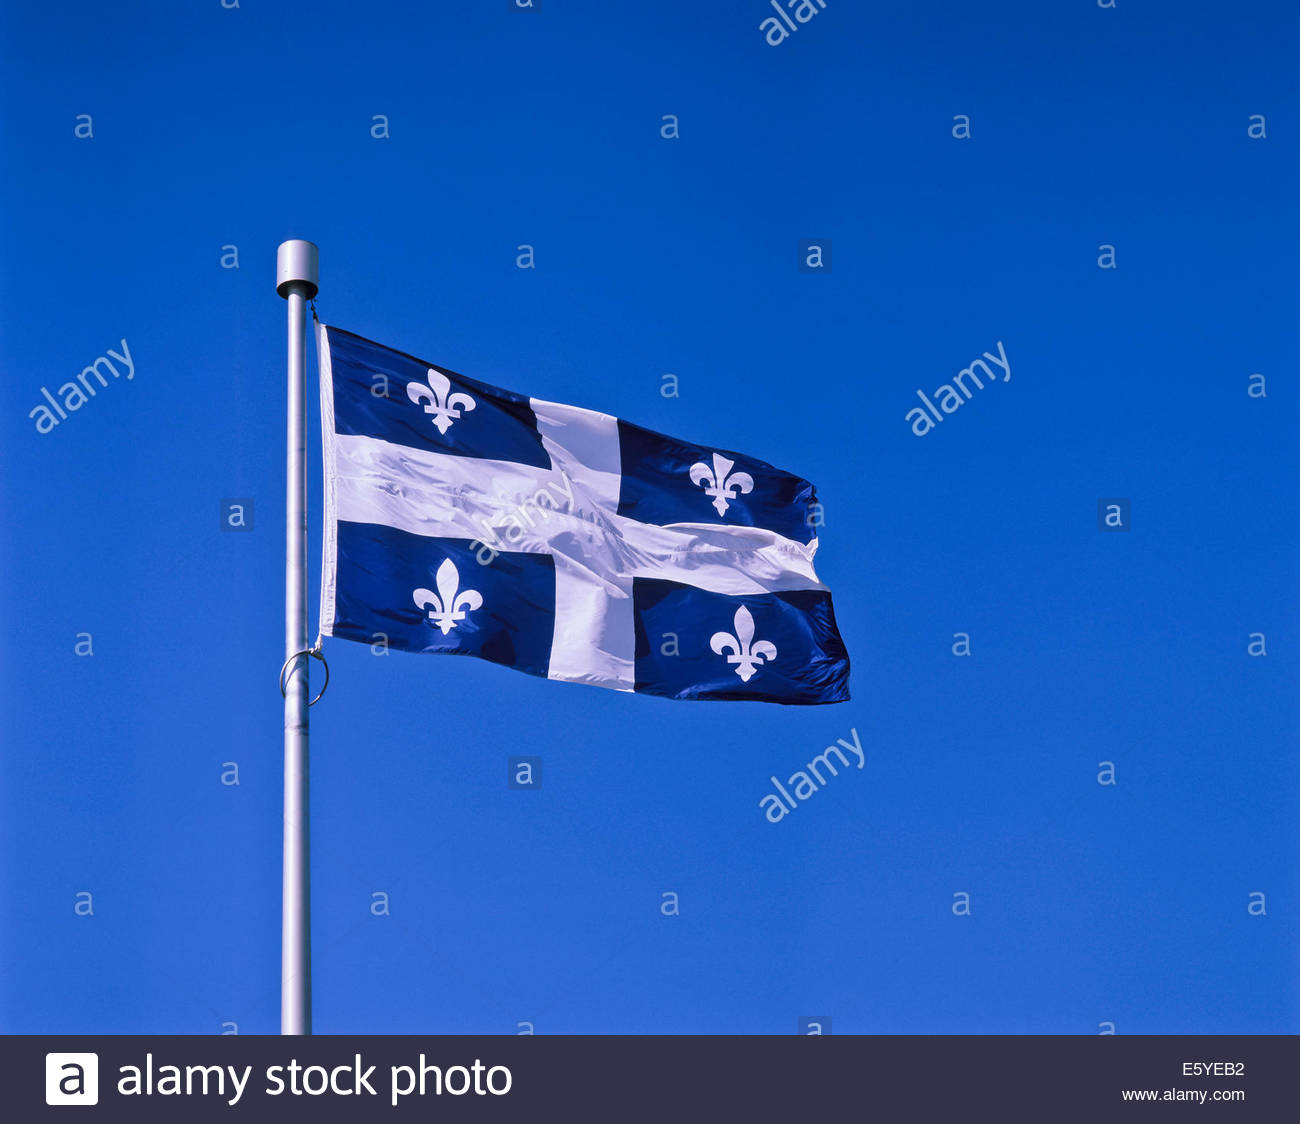 Flag of the province of Quebec Canada - Stock Image